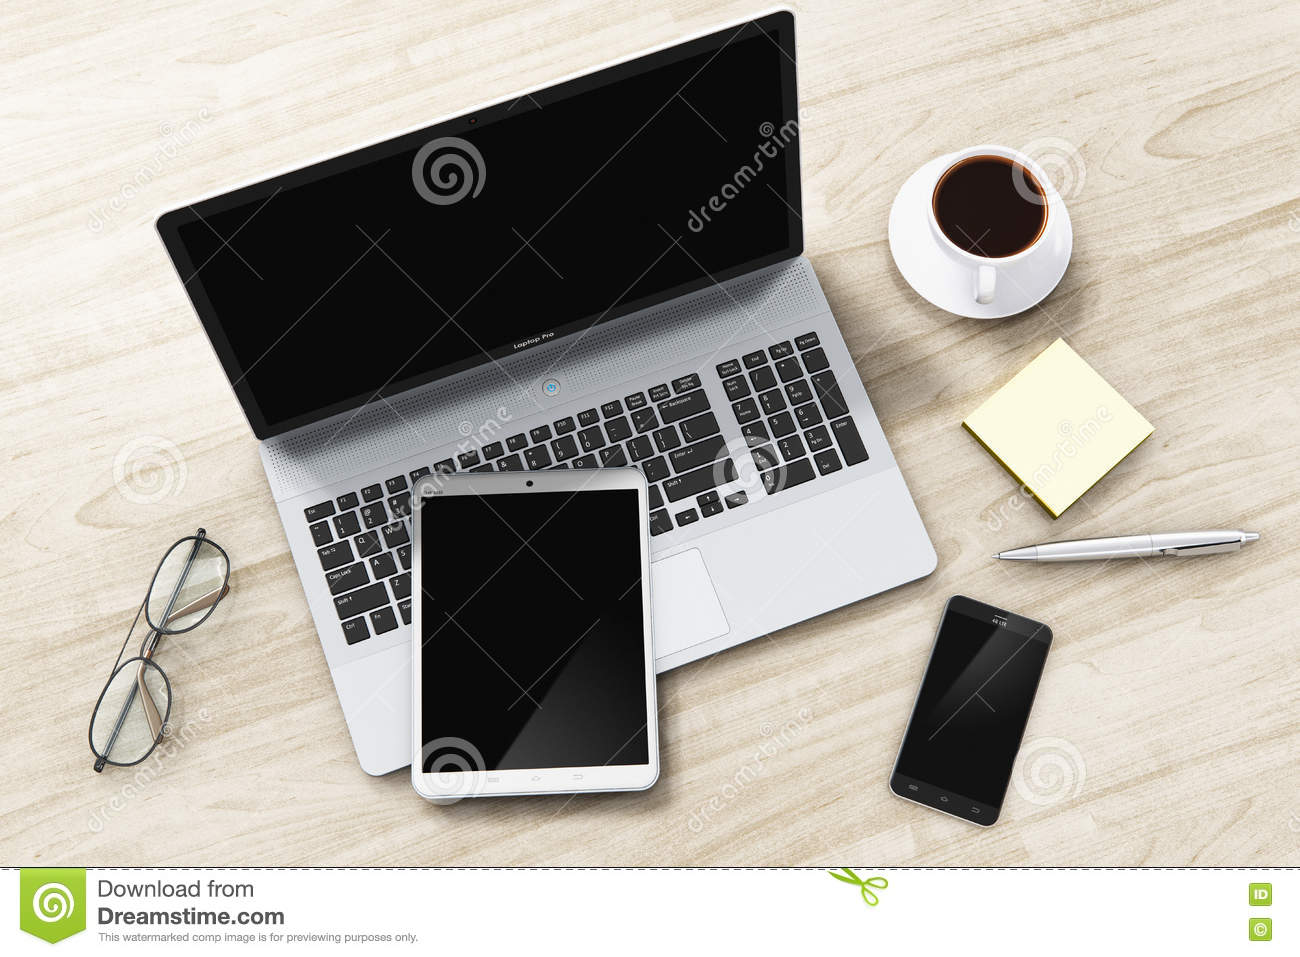 Laptop, tablet and smartphone on office table